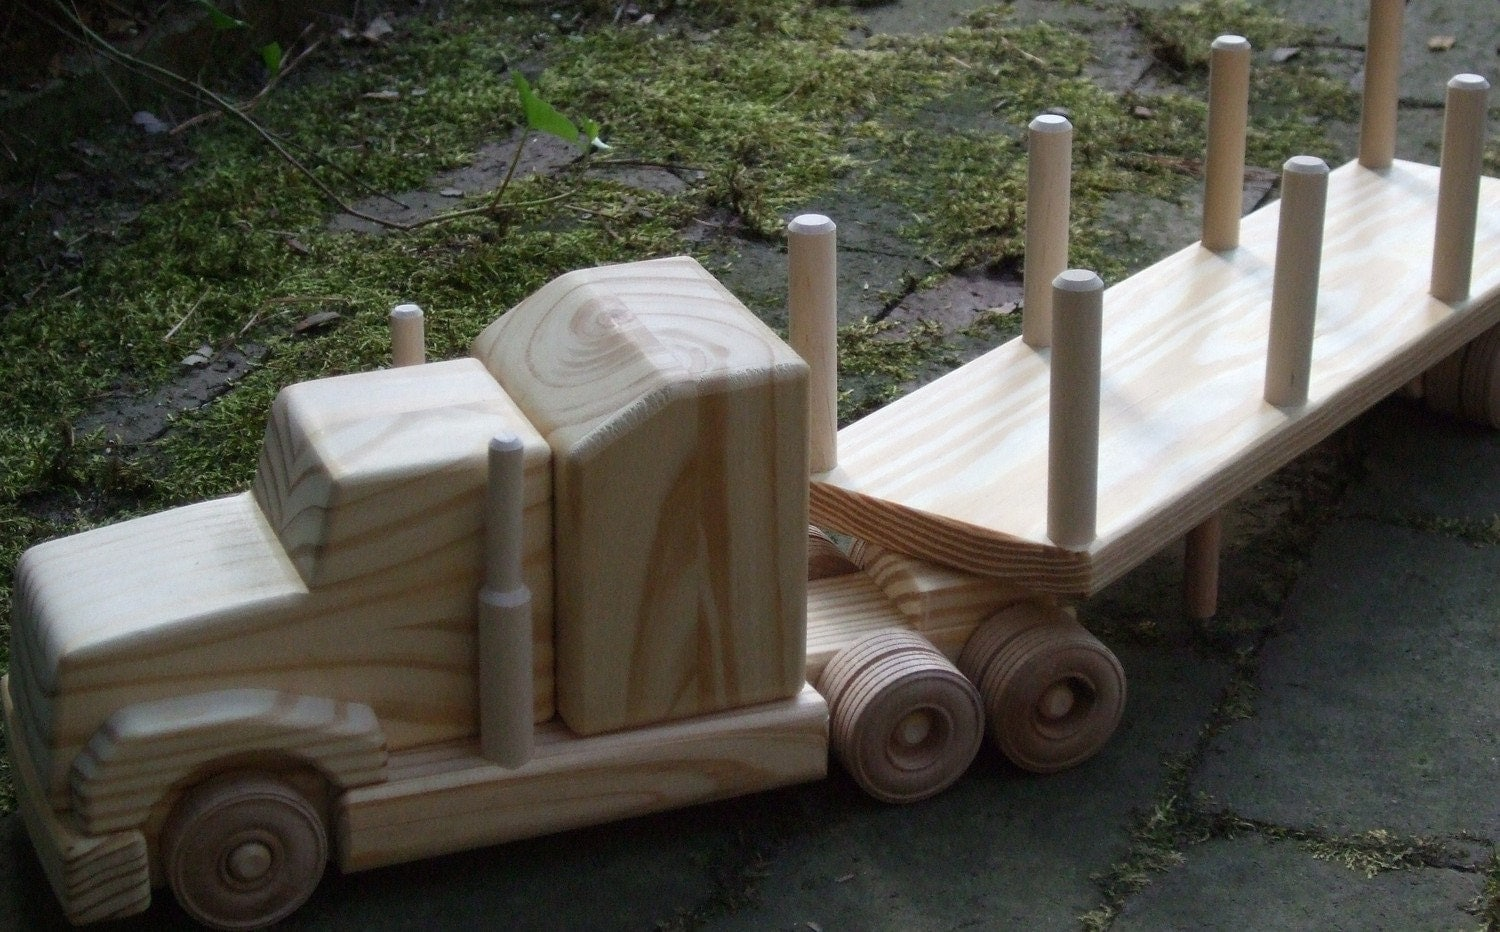 Wooden Toy Truck log hauler with sleeper cab by MyFathersHandsLLC